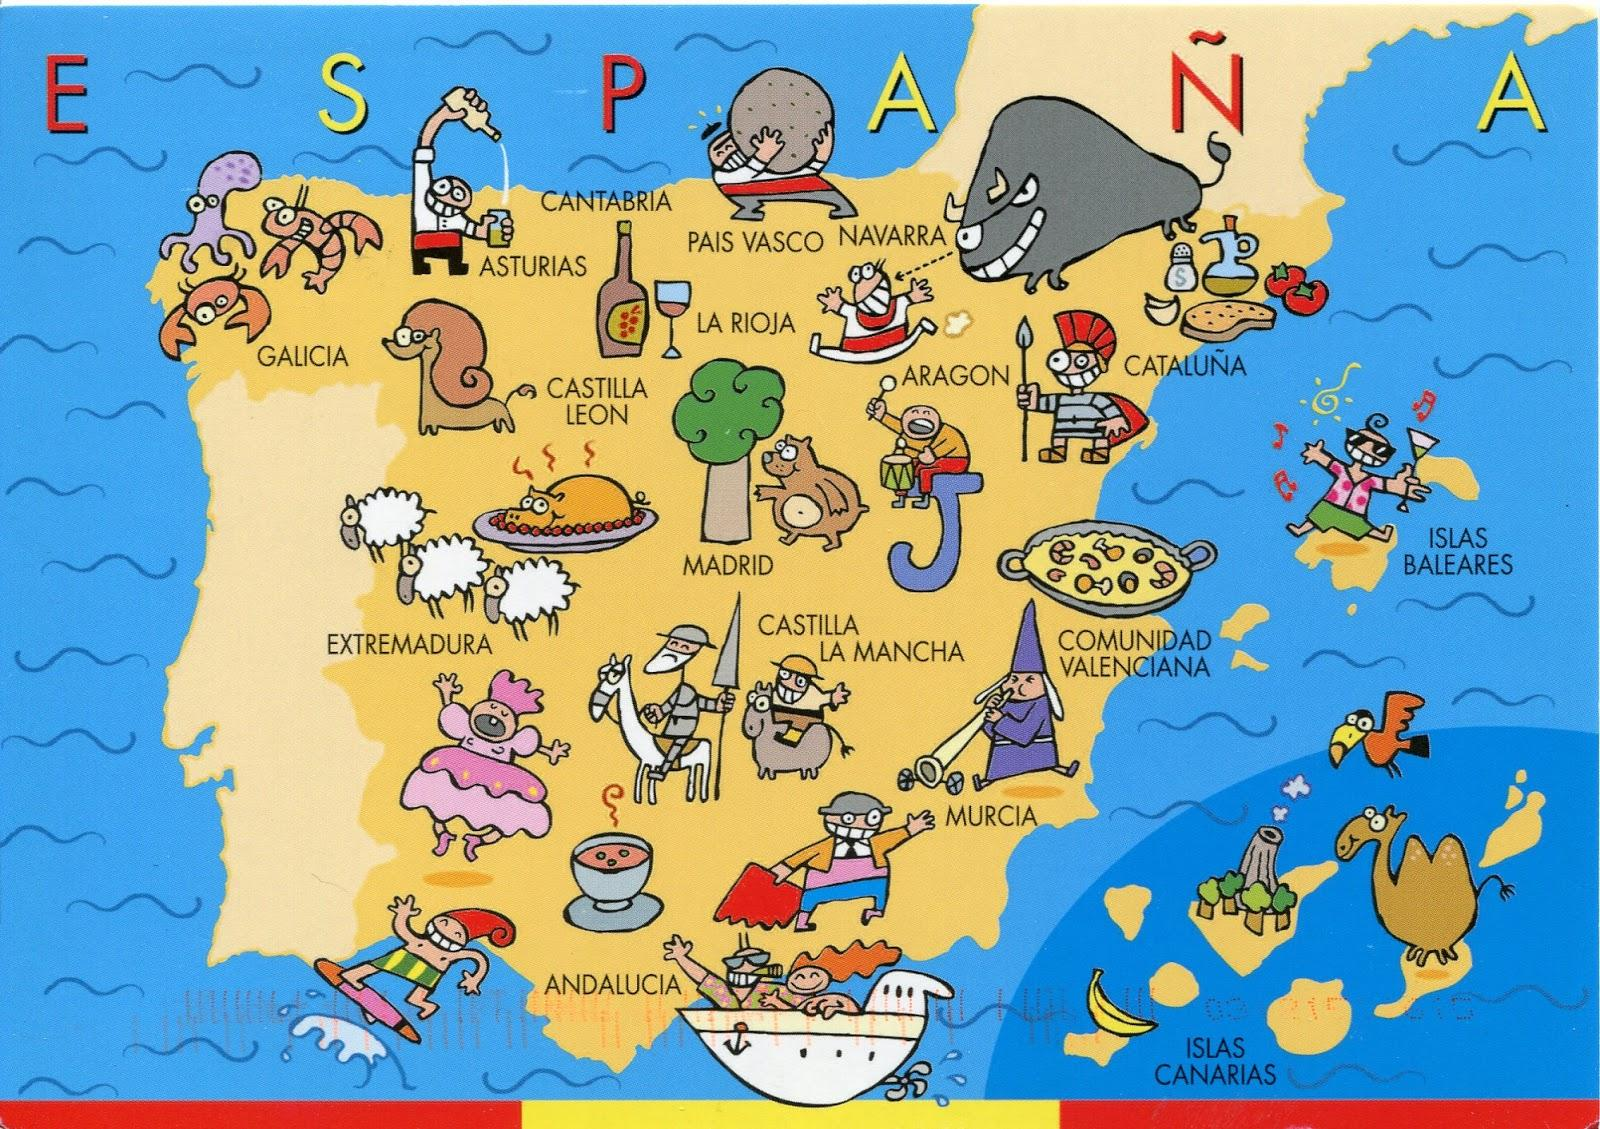 Kids Map Of Spain.Map Of Spain For Kids Spain Map For Kids Southern Europe Europe